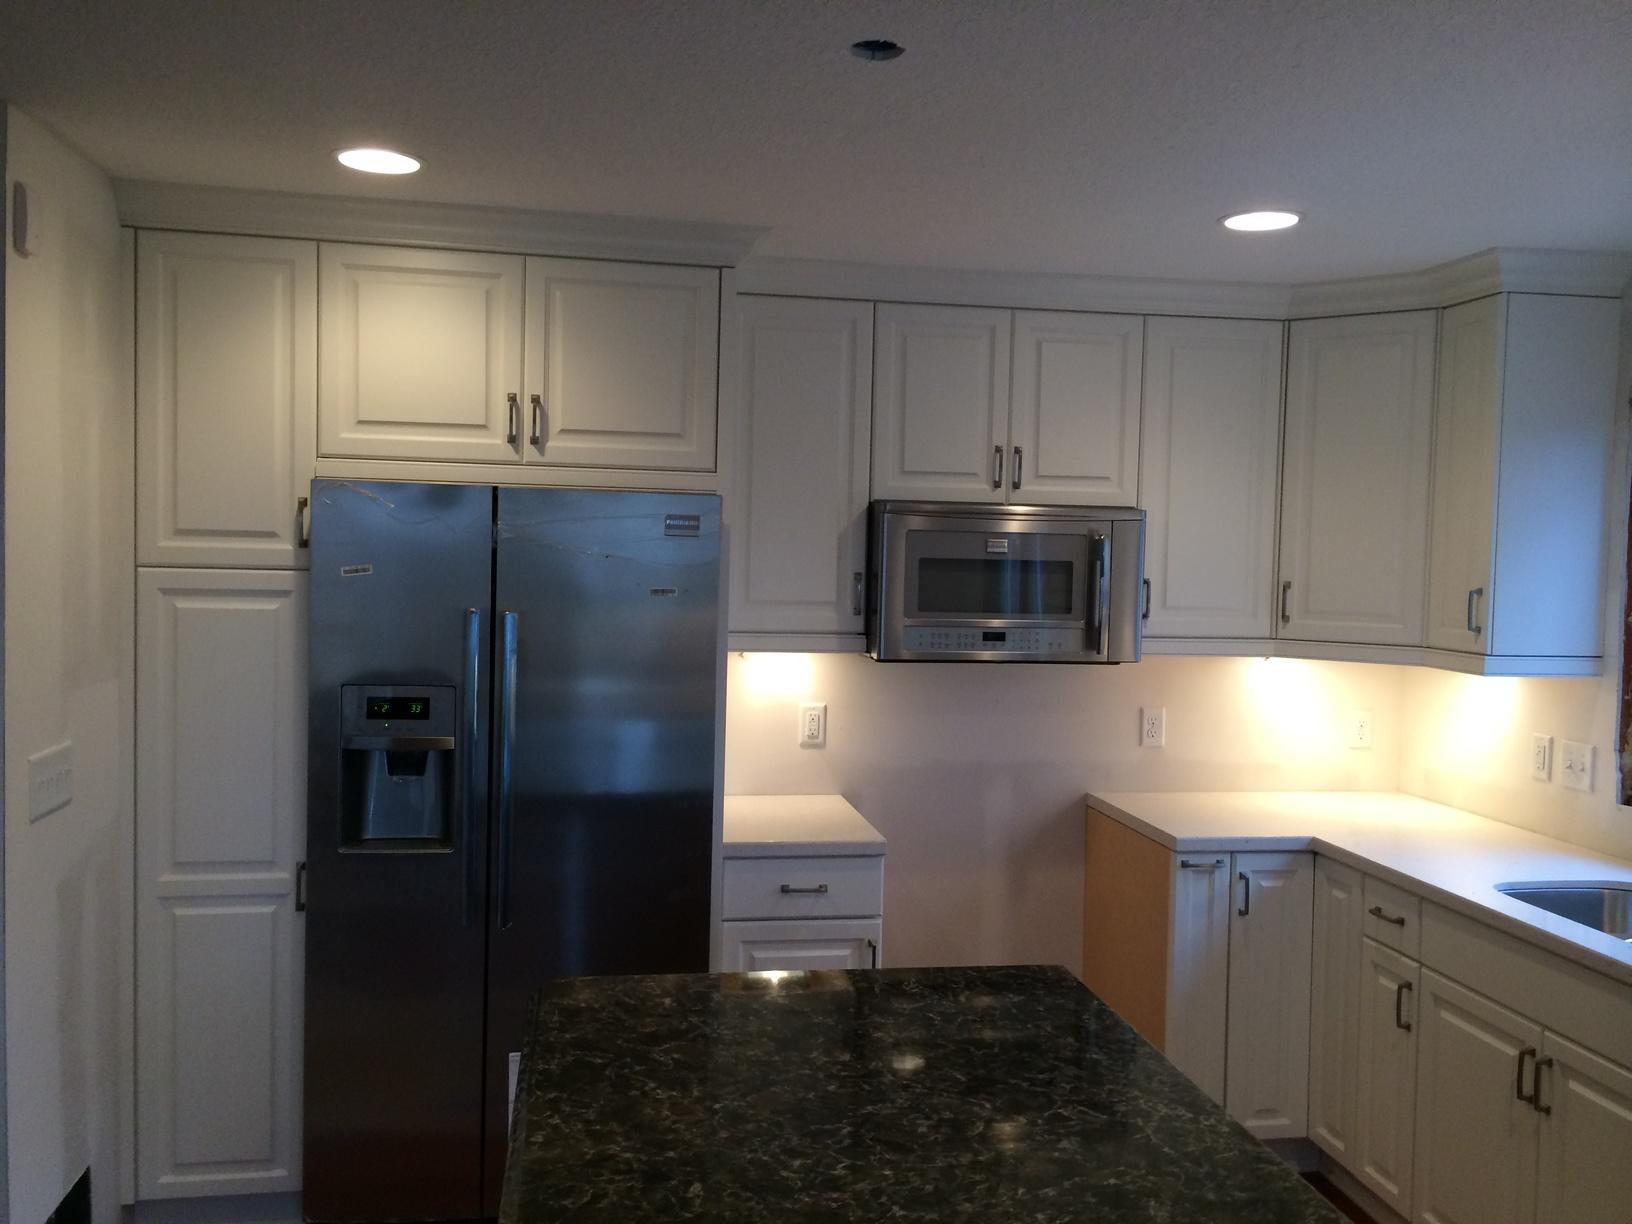 Newly remodeled kitchen with stainless steel microwave and refrigerator.